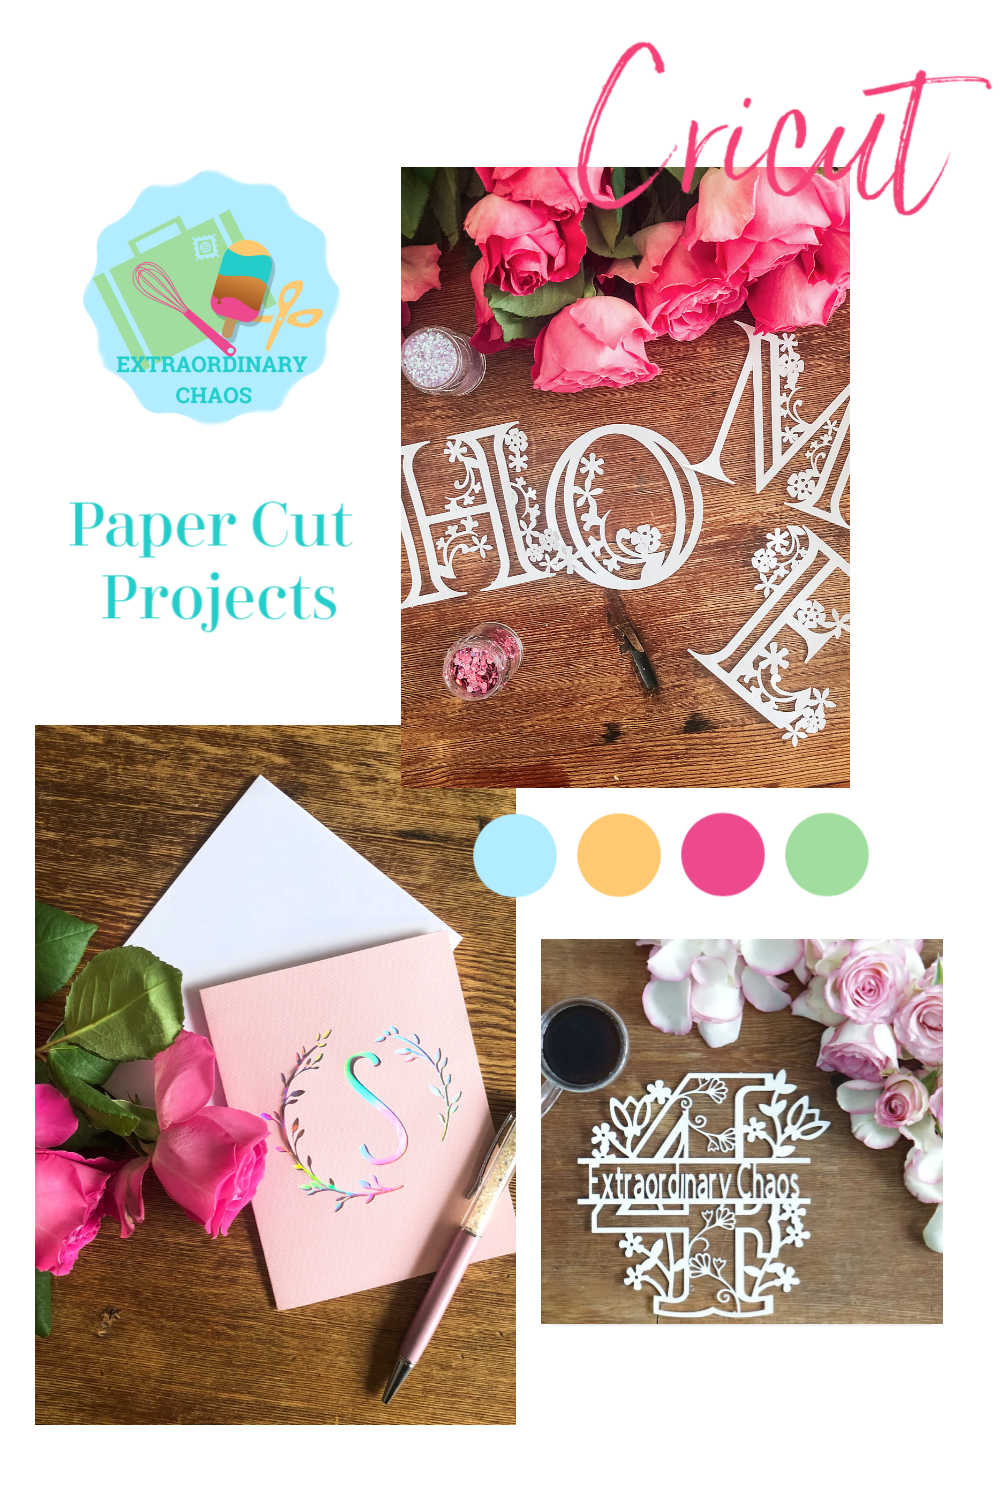 Paper Cutting Art Projects And Tutorials